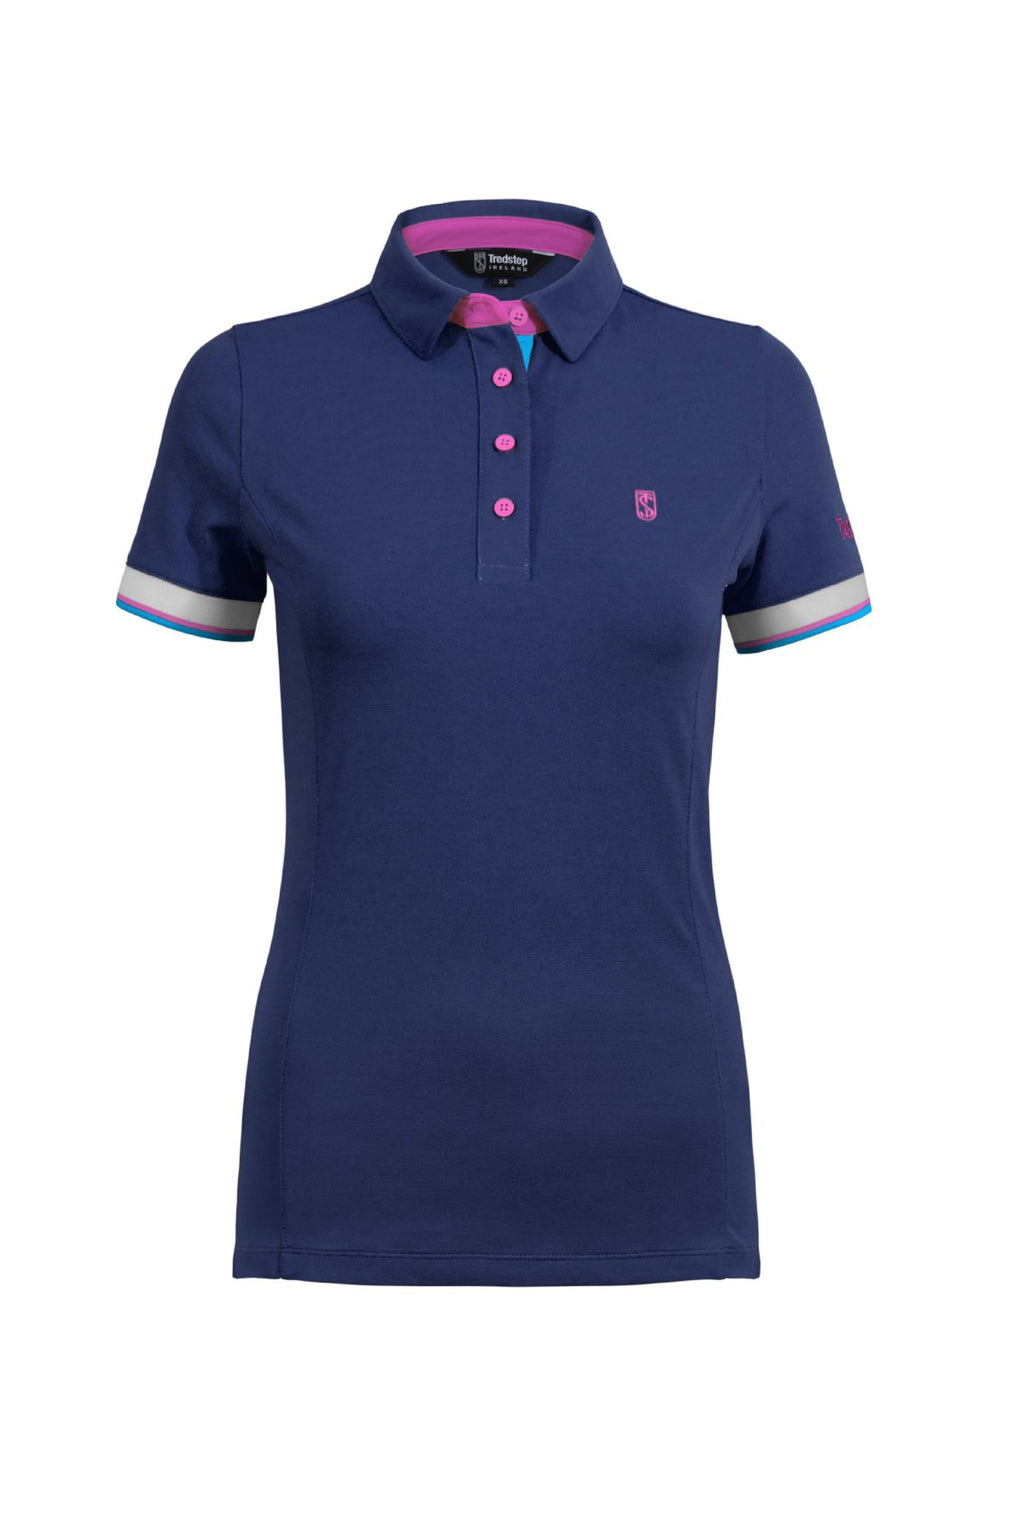 Tredstep Ladies Performance Polo